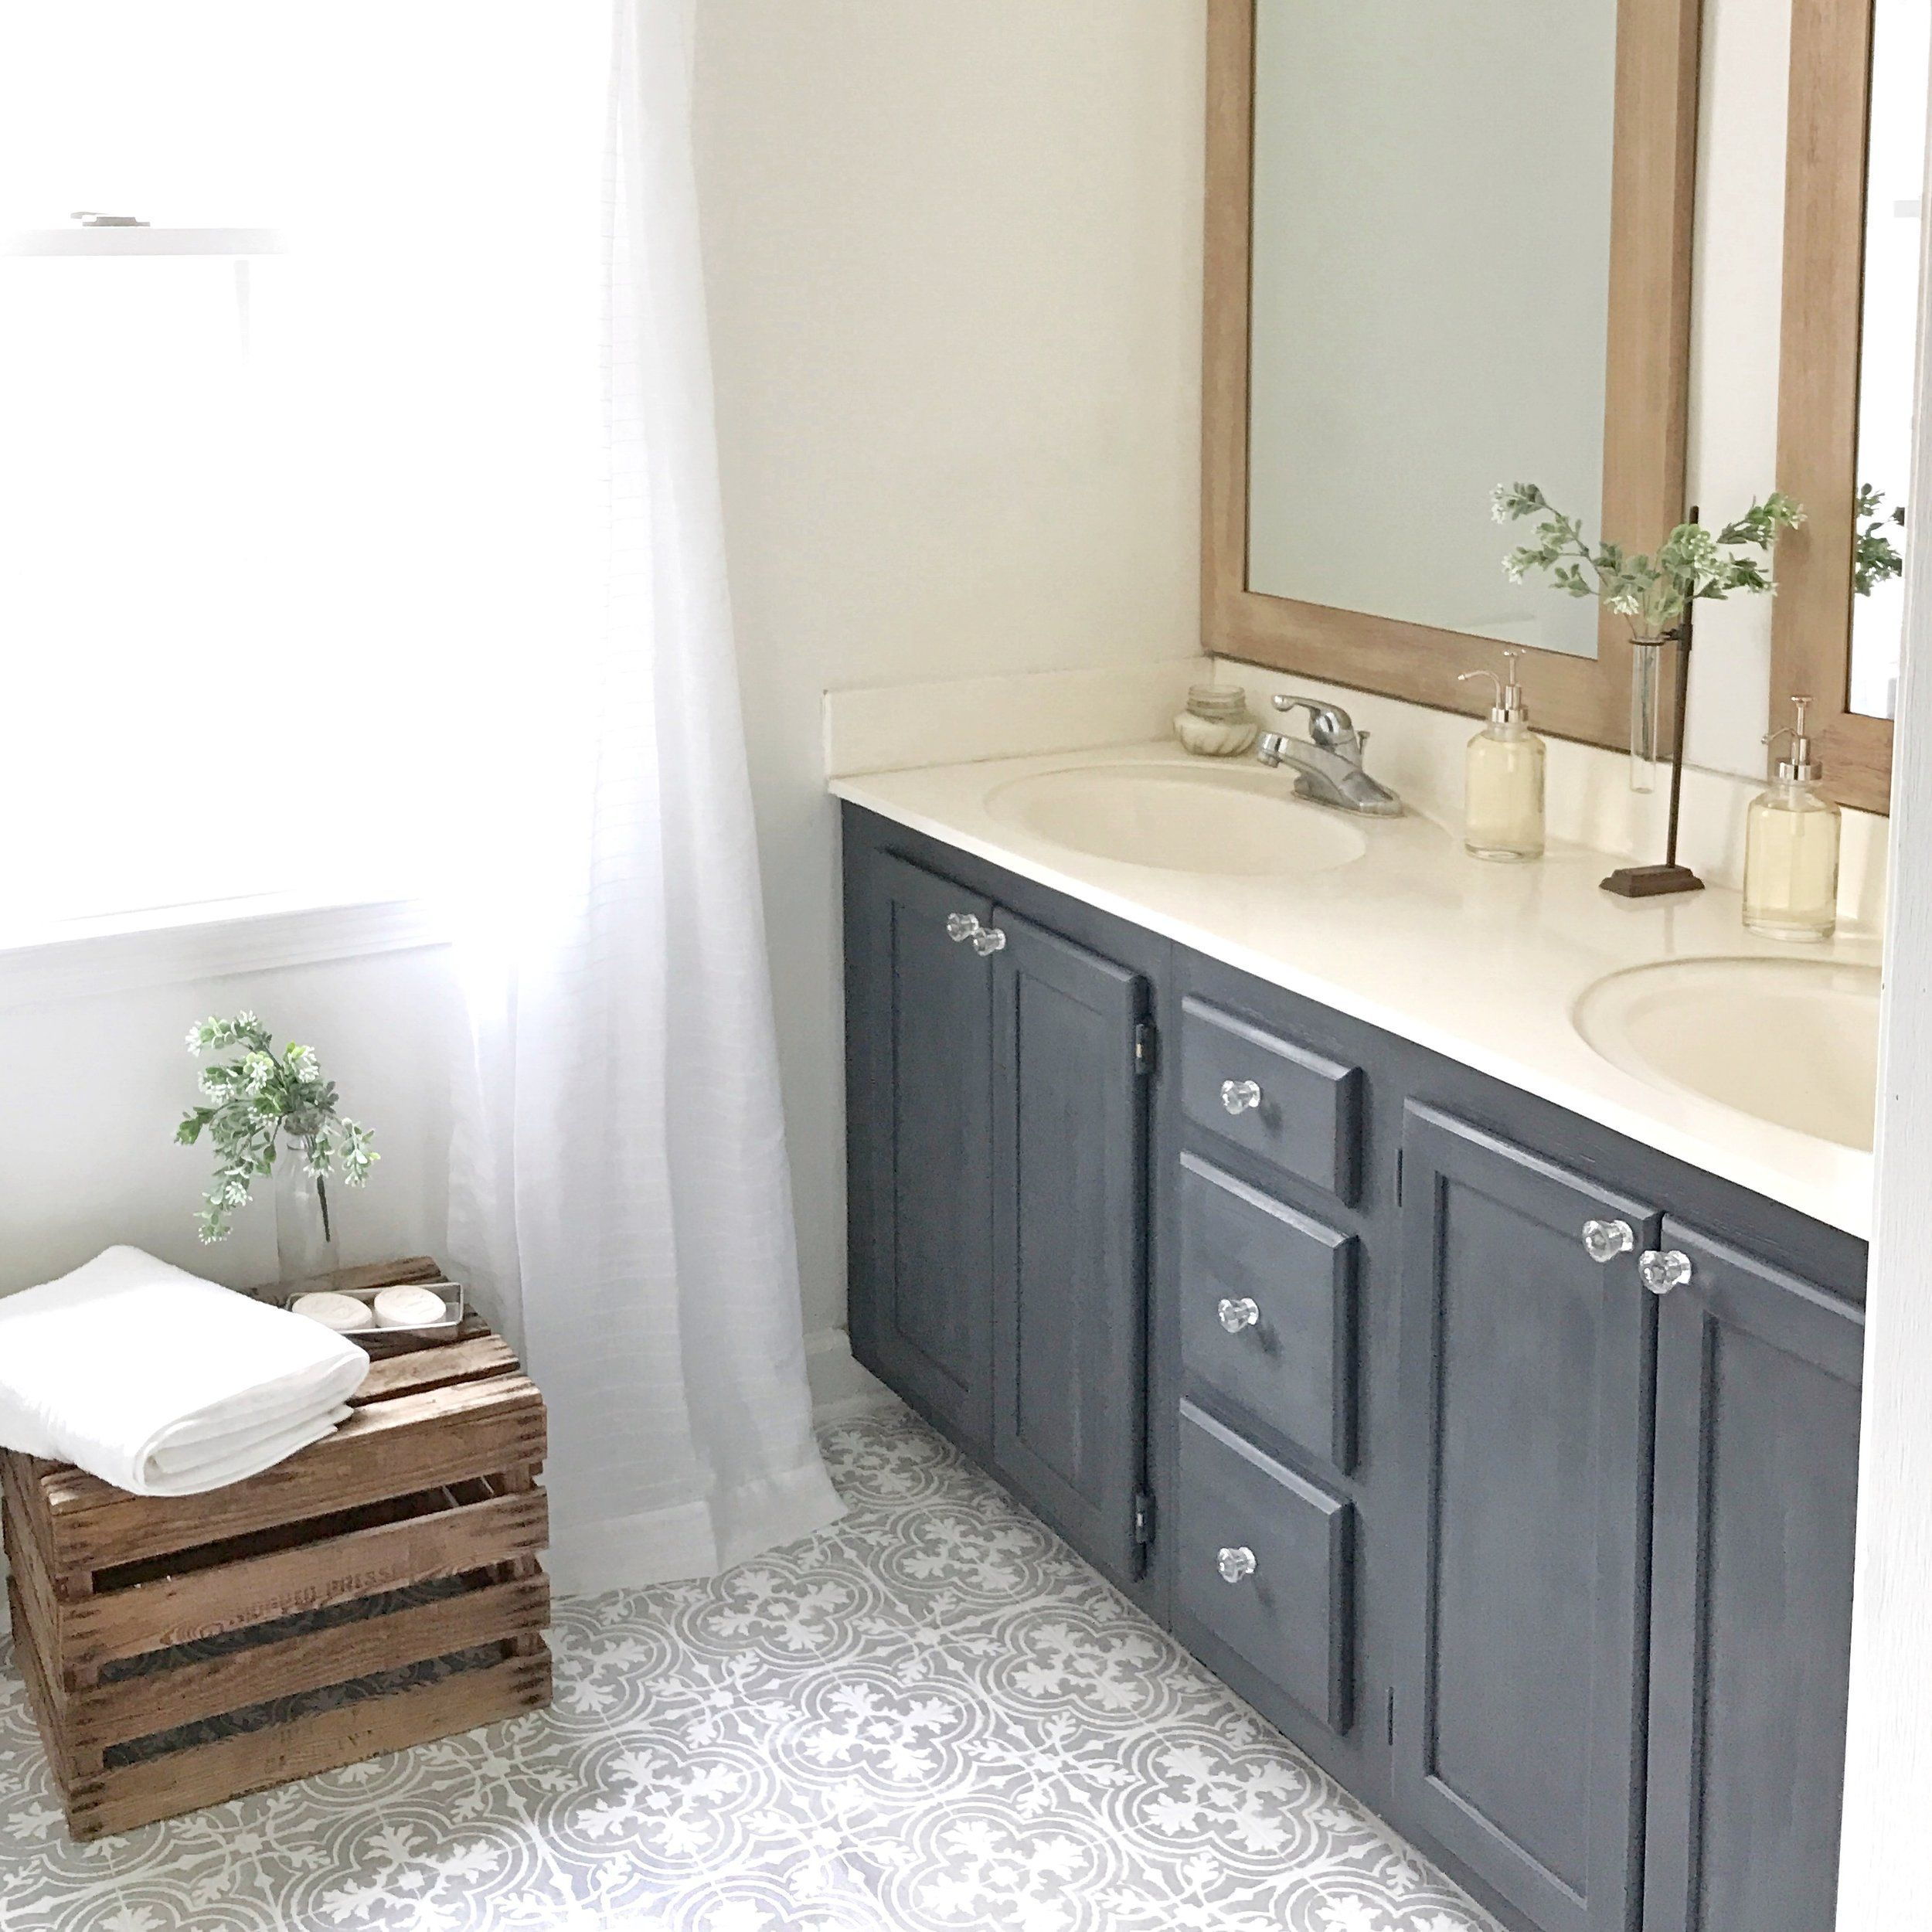 Wunderbar How To Paint Your Linoleum Or Tile Floors To Look Like Patterned Cement  Tiles  Full Tutorial | Plum Pretty Decor U0026 Design Co. | Pinterest